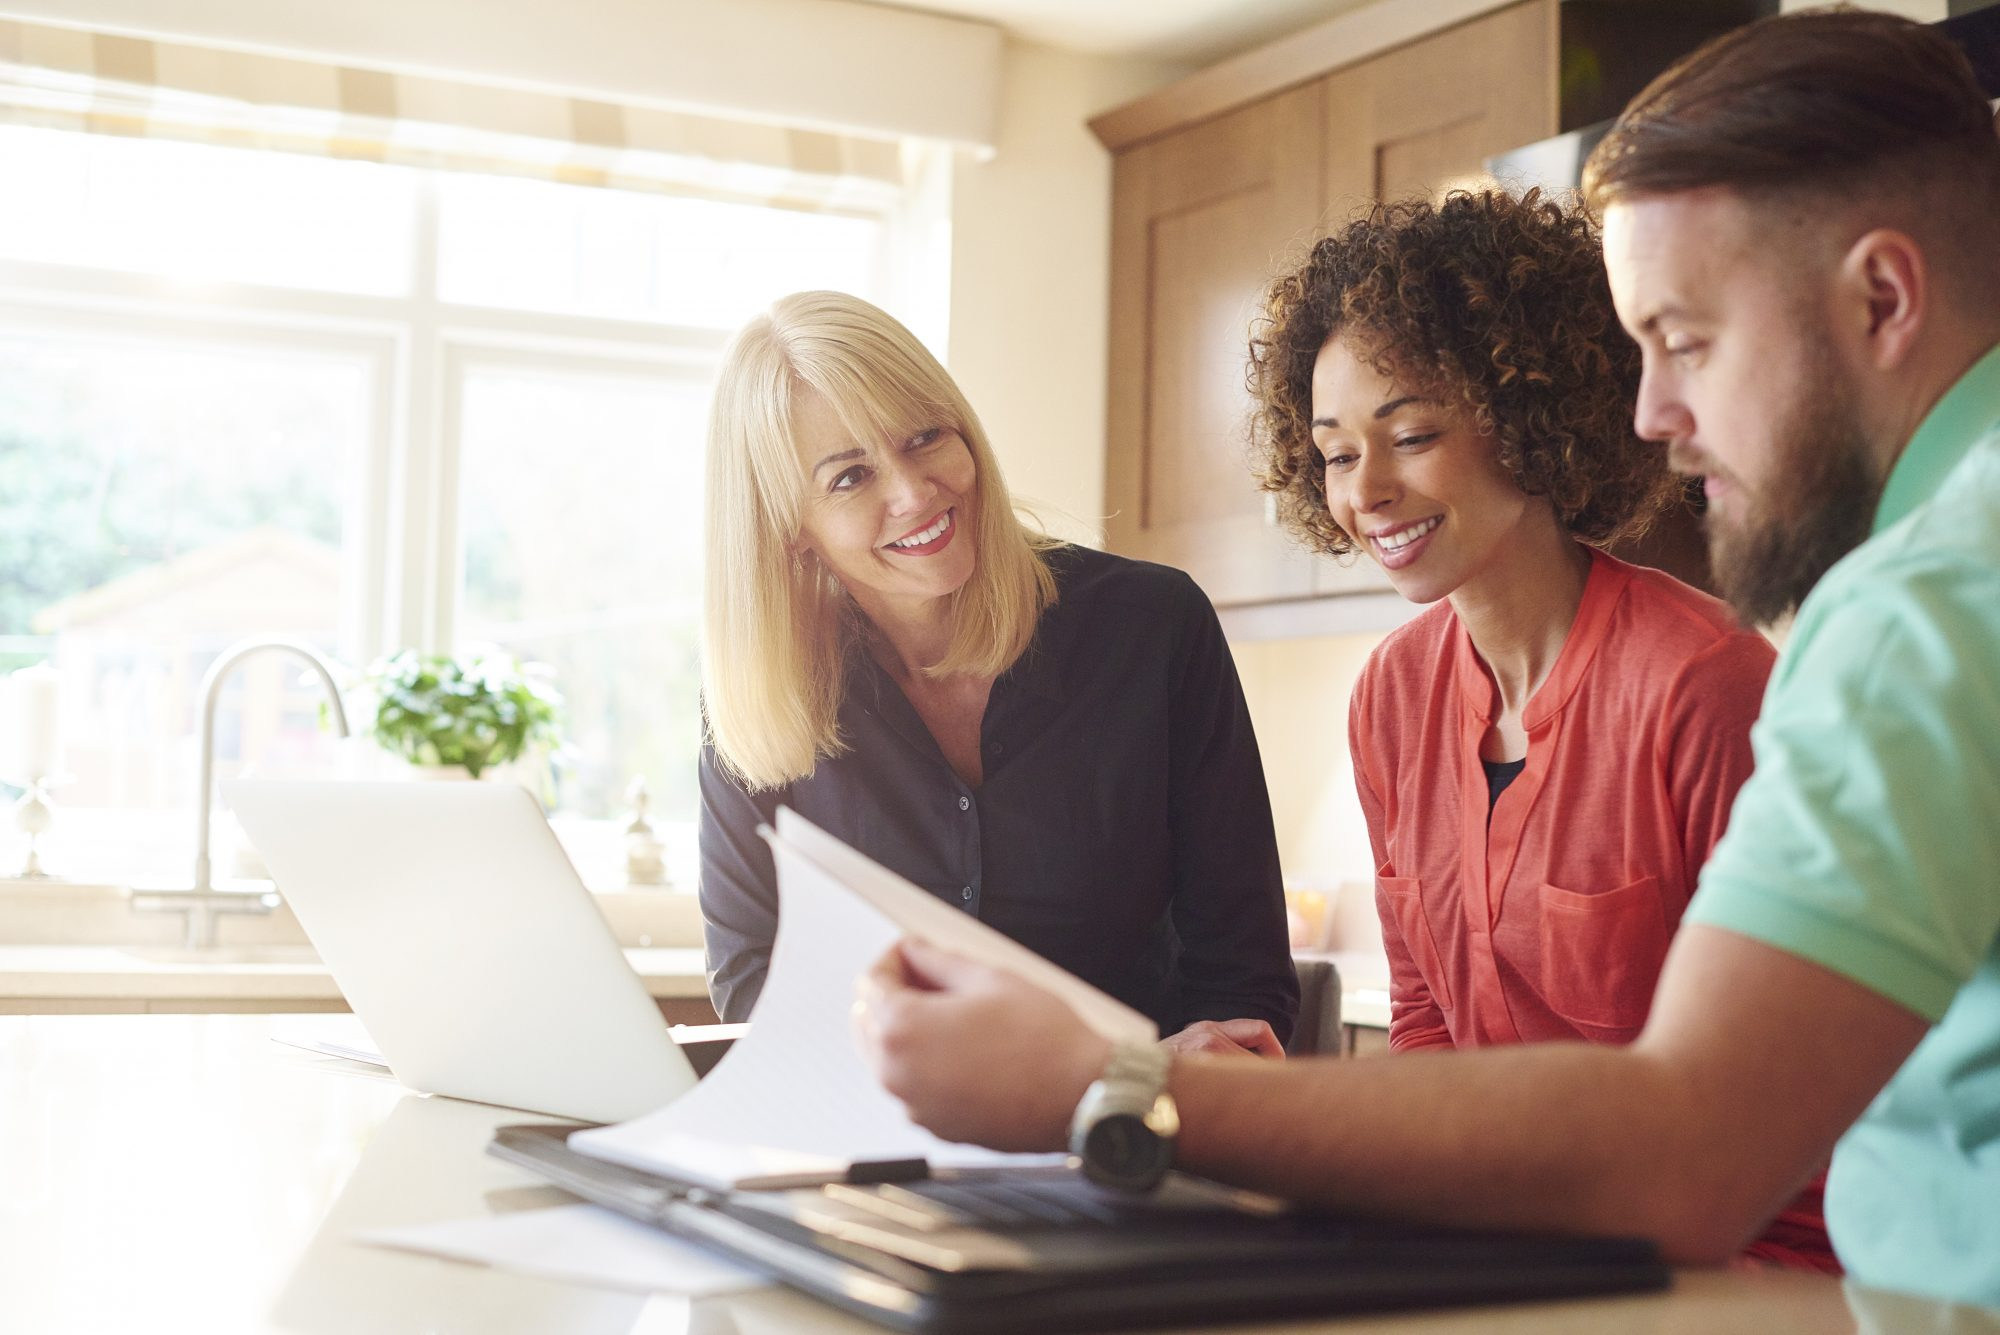 #2 Insurance agent reviews insurance policy with young couple in their home.